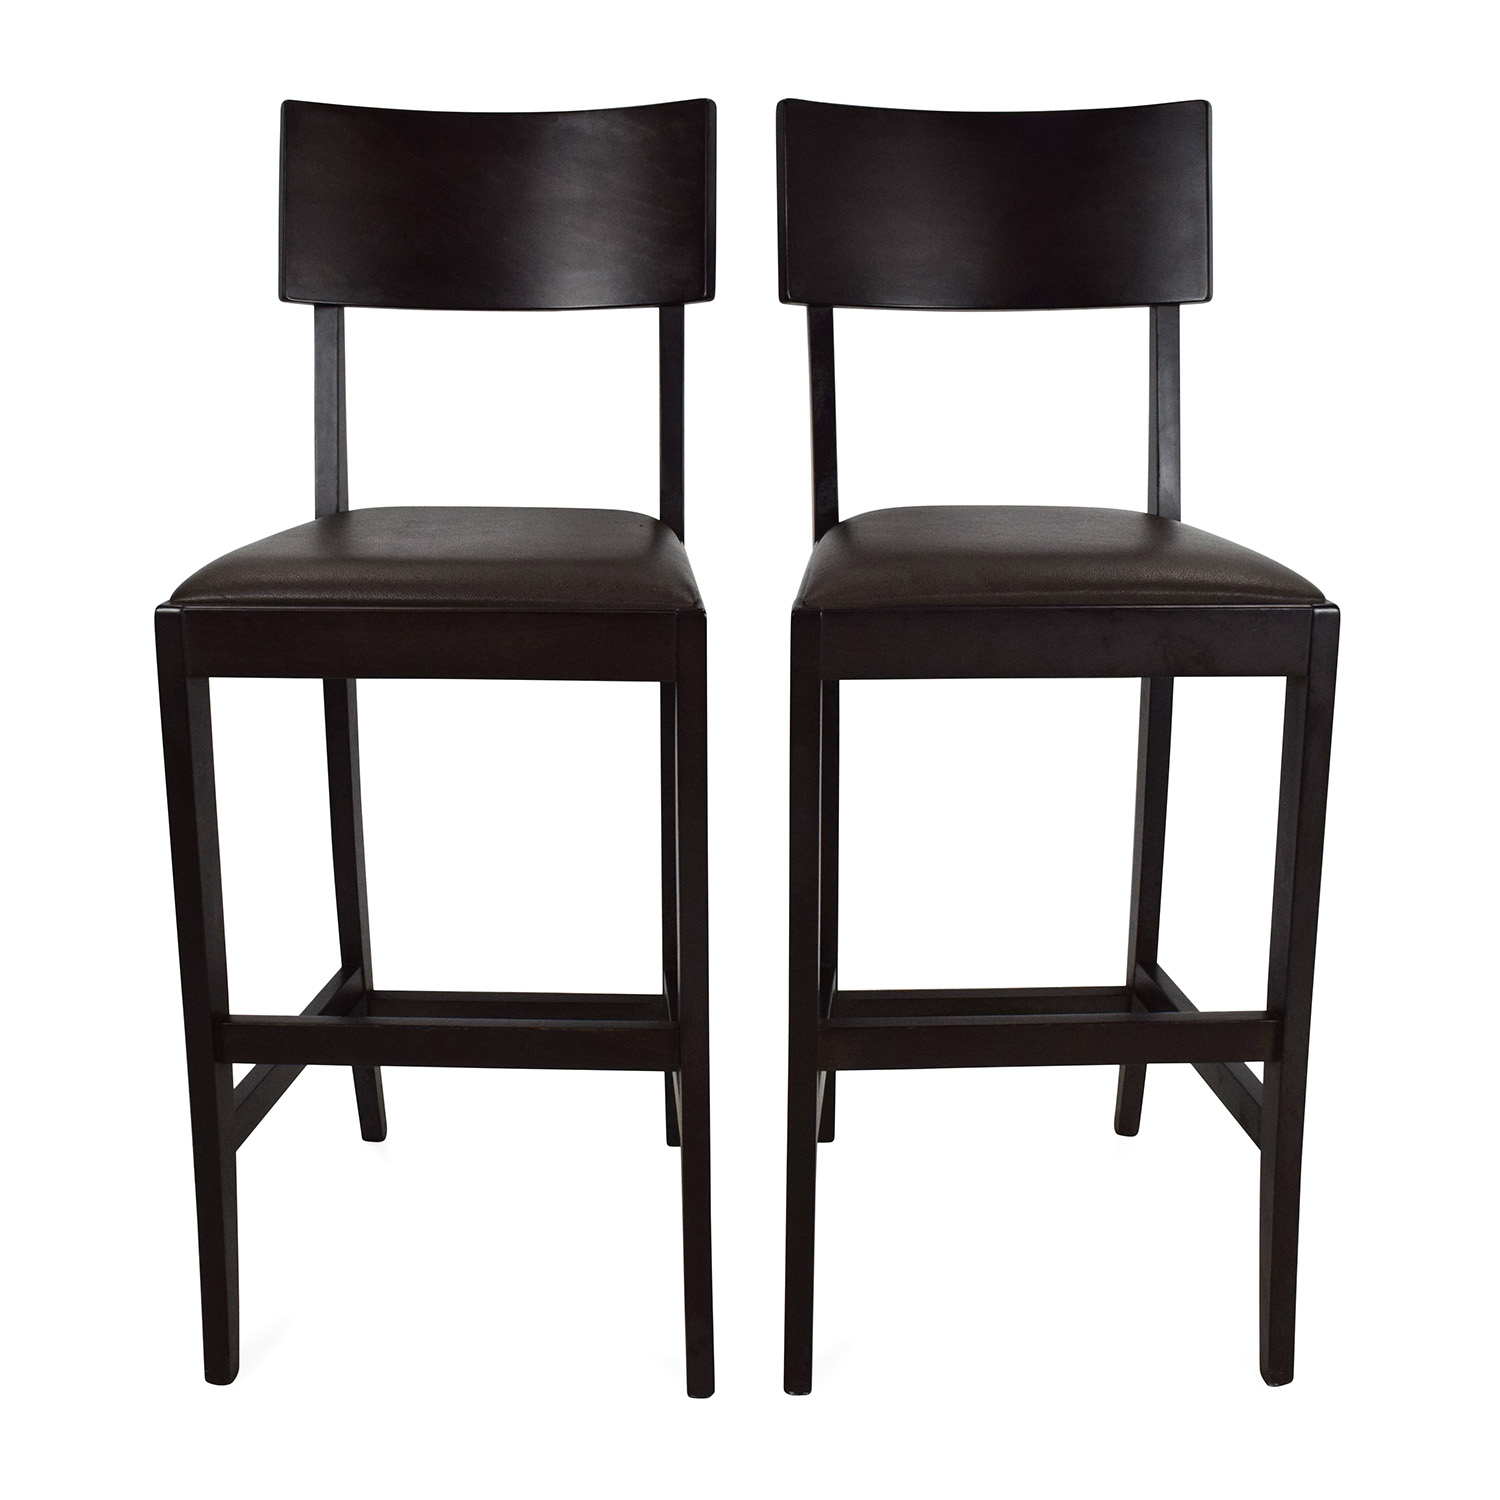 Crate and Barrel Crate and Barrel Bar Stools second hand